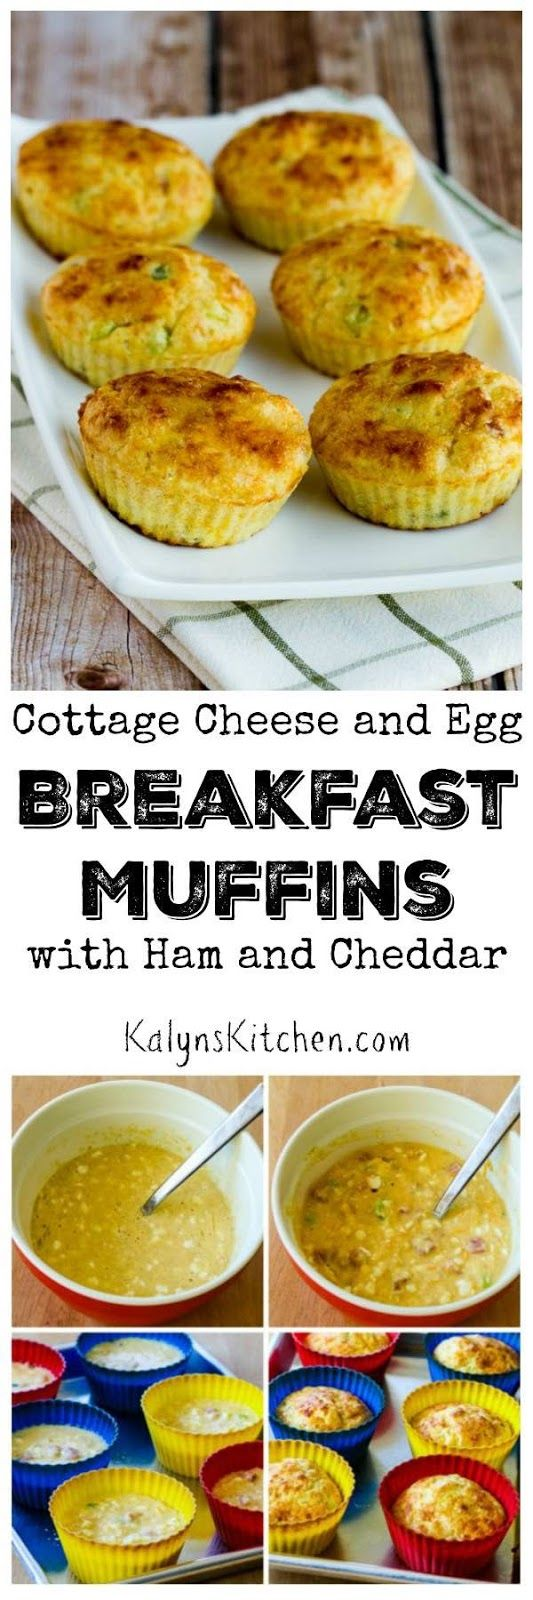 Cottage Cheese and Egg Breakfast Muffins with Ham and Cheddar are ...